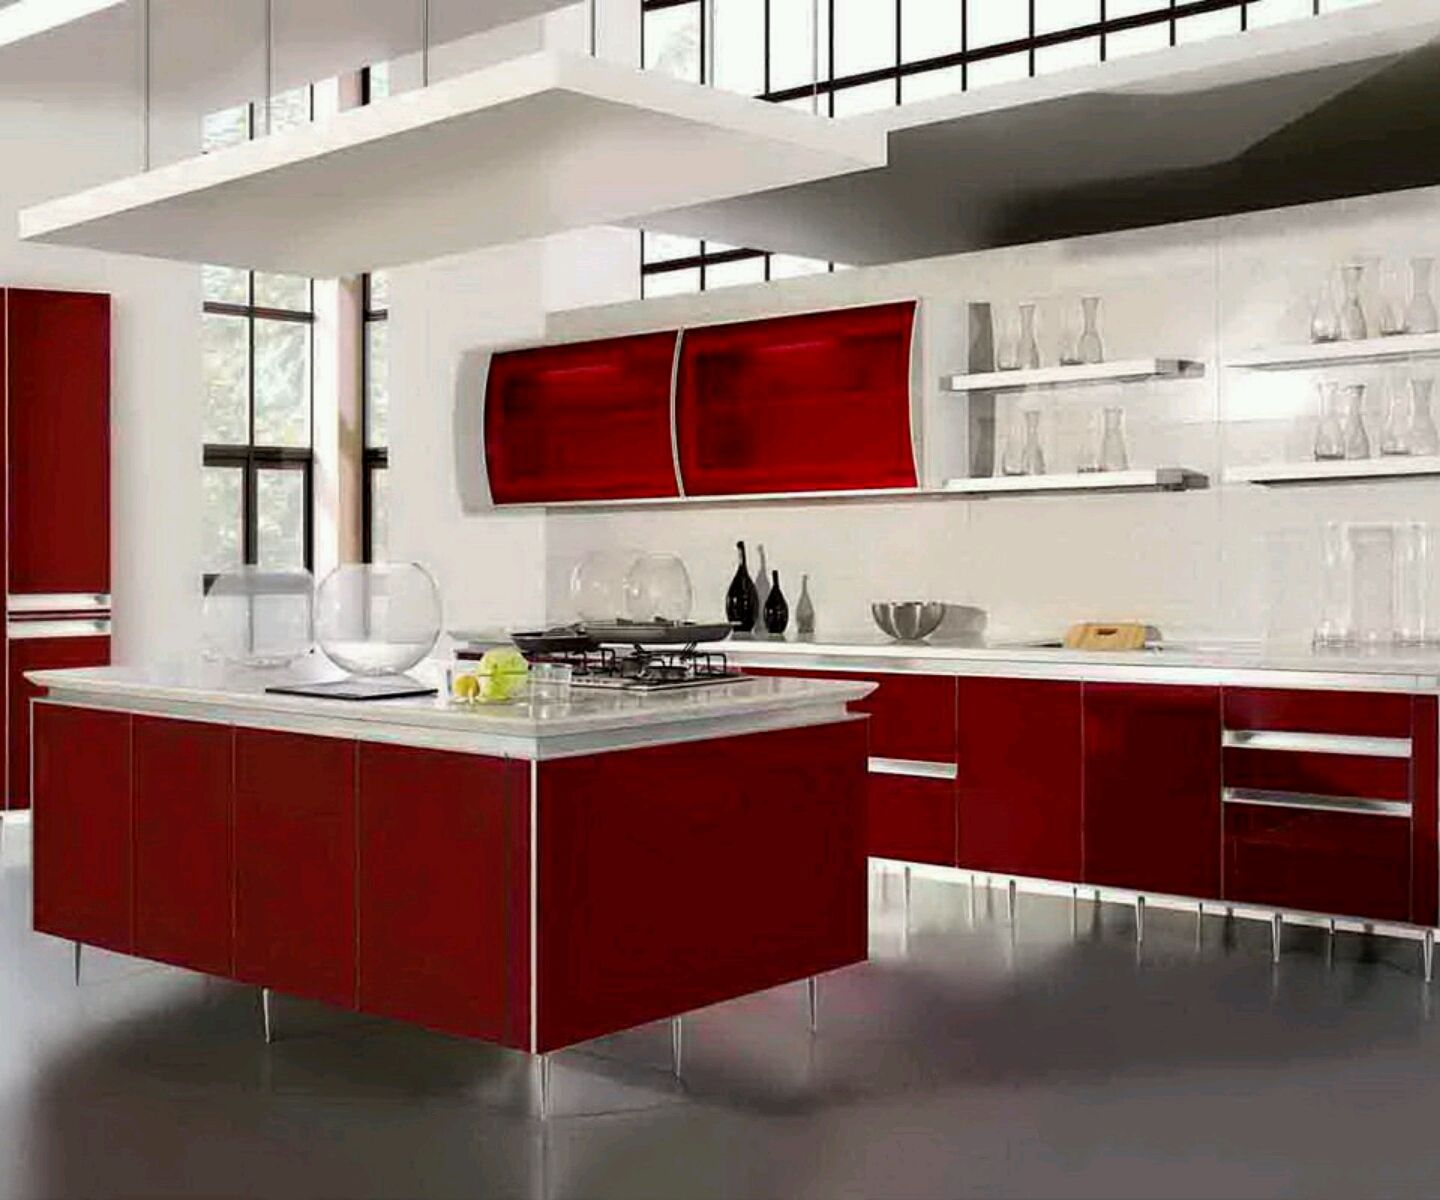 New Home Designs Latest Modern Home Kitchen Cabinet: Home Designs Latest Ultra Modern Kitchen Designs Ideas